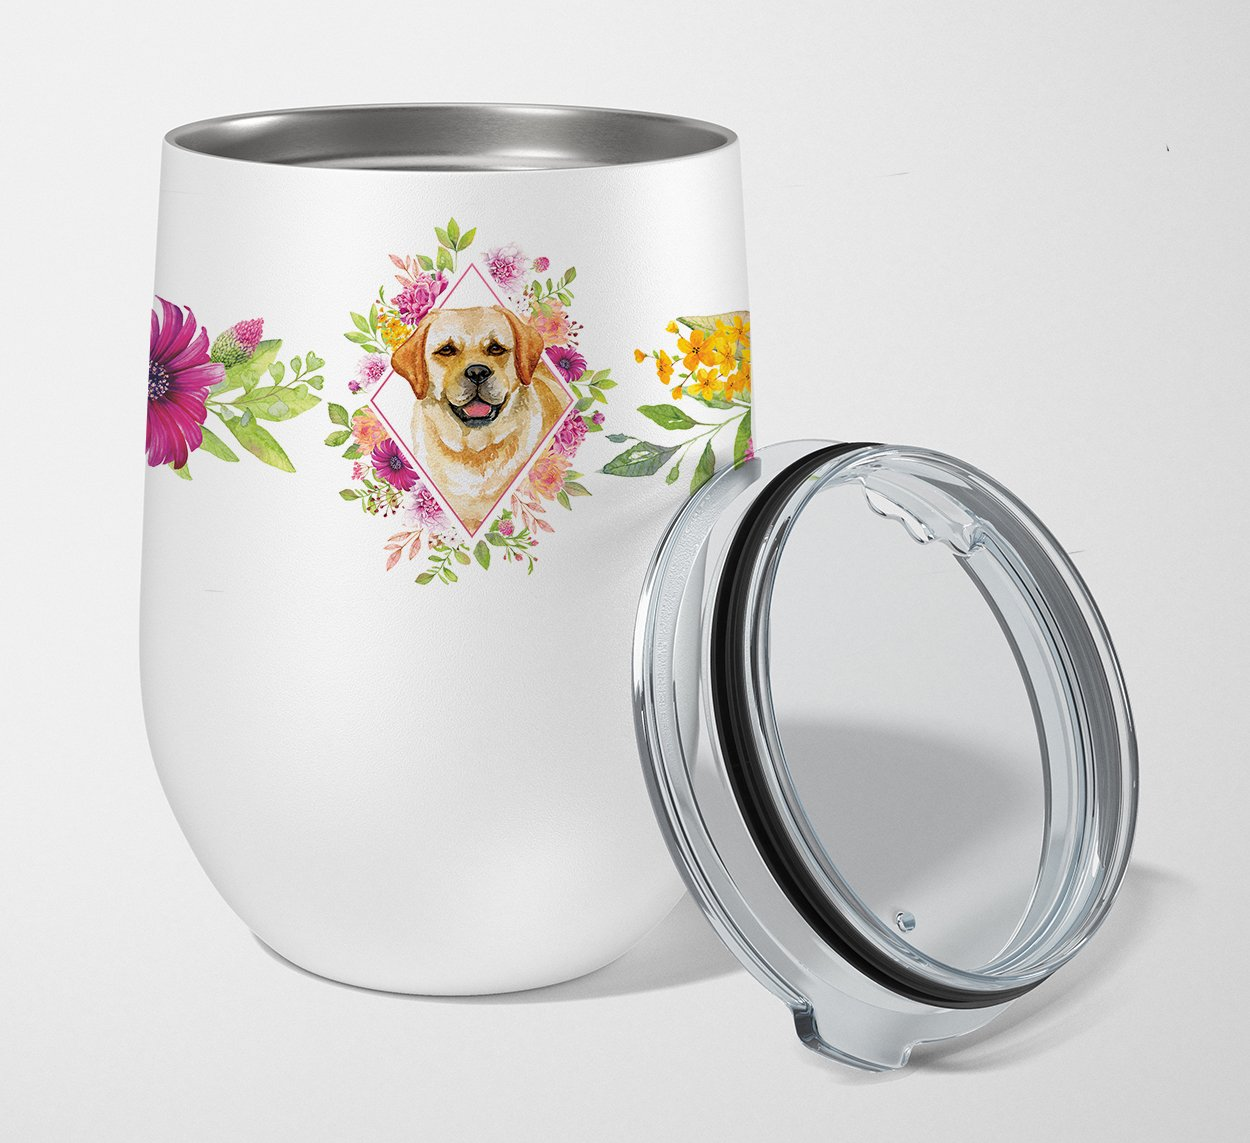 Golden Retriever Pink Flowers Stainless Steel 12 oz Stemless Wine Glass CK4149TBL12 by Caroline's Treasures